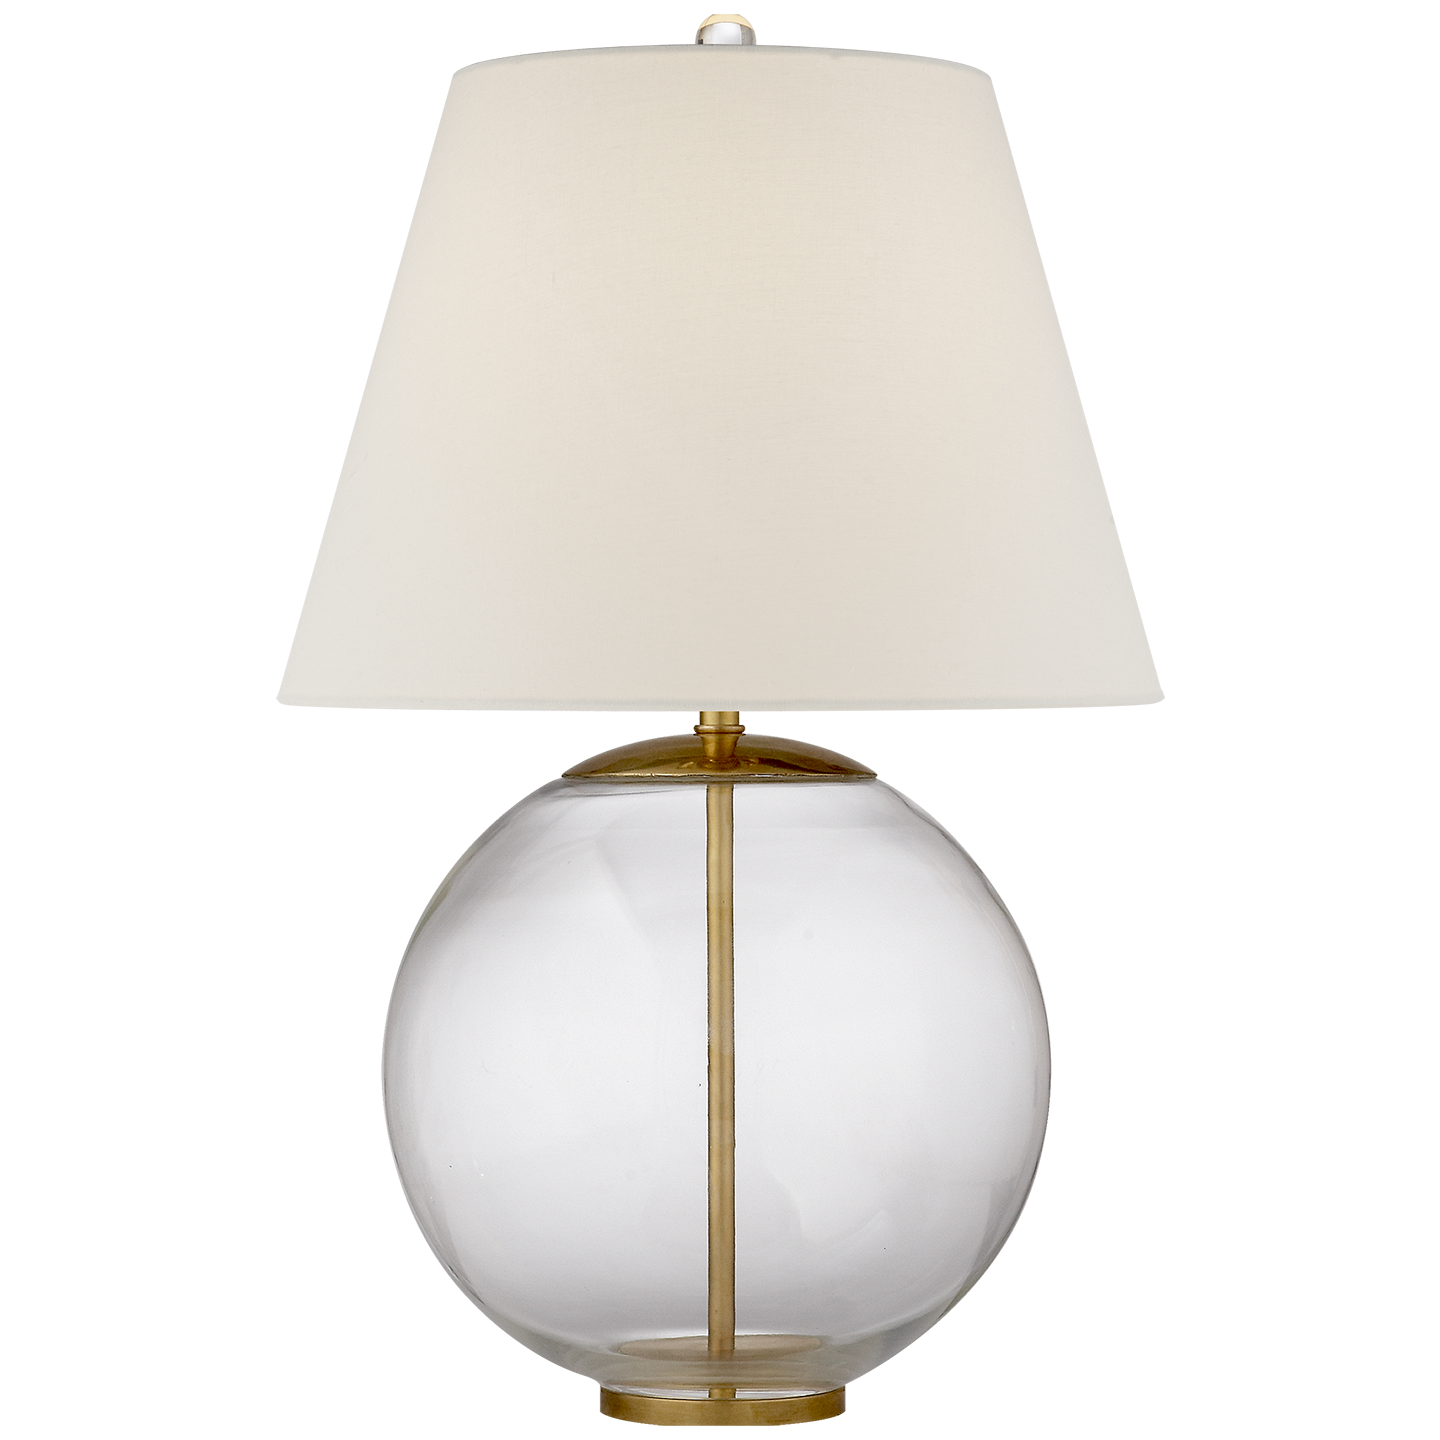 Morton Table Lamp Crystal Table Lamps Lamp Round Table Lamp